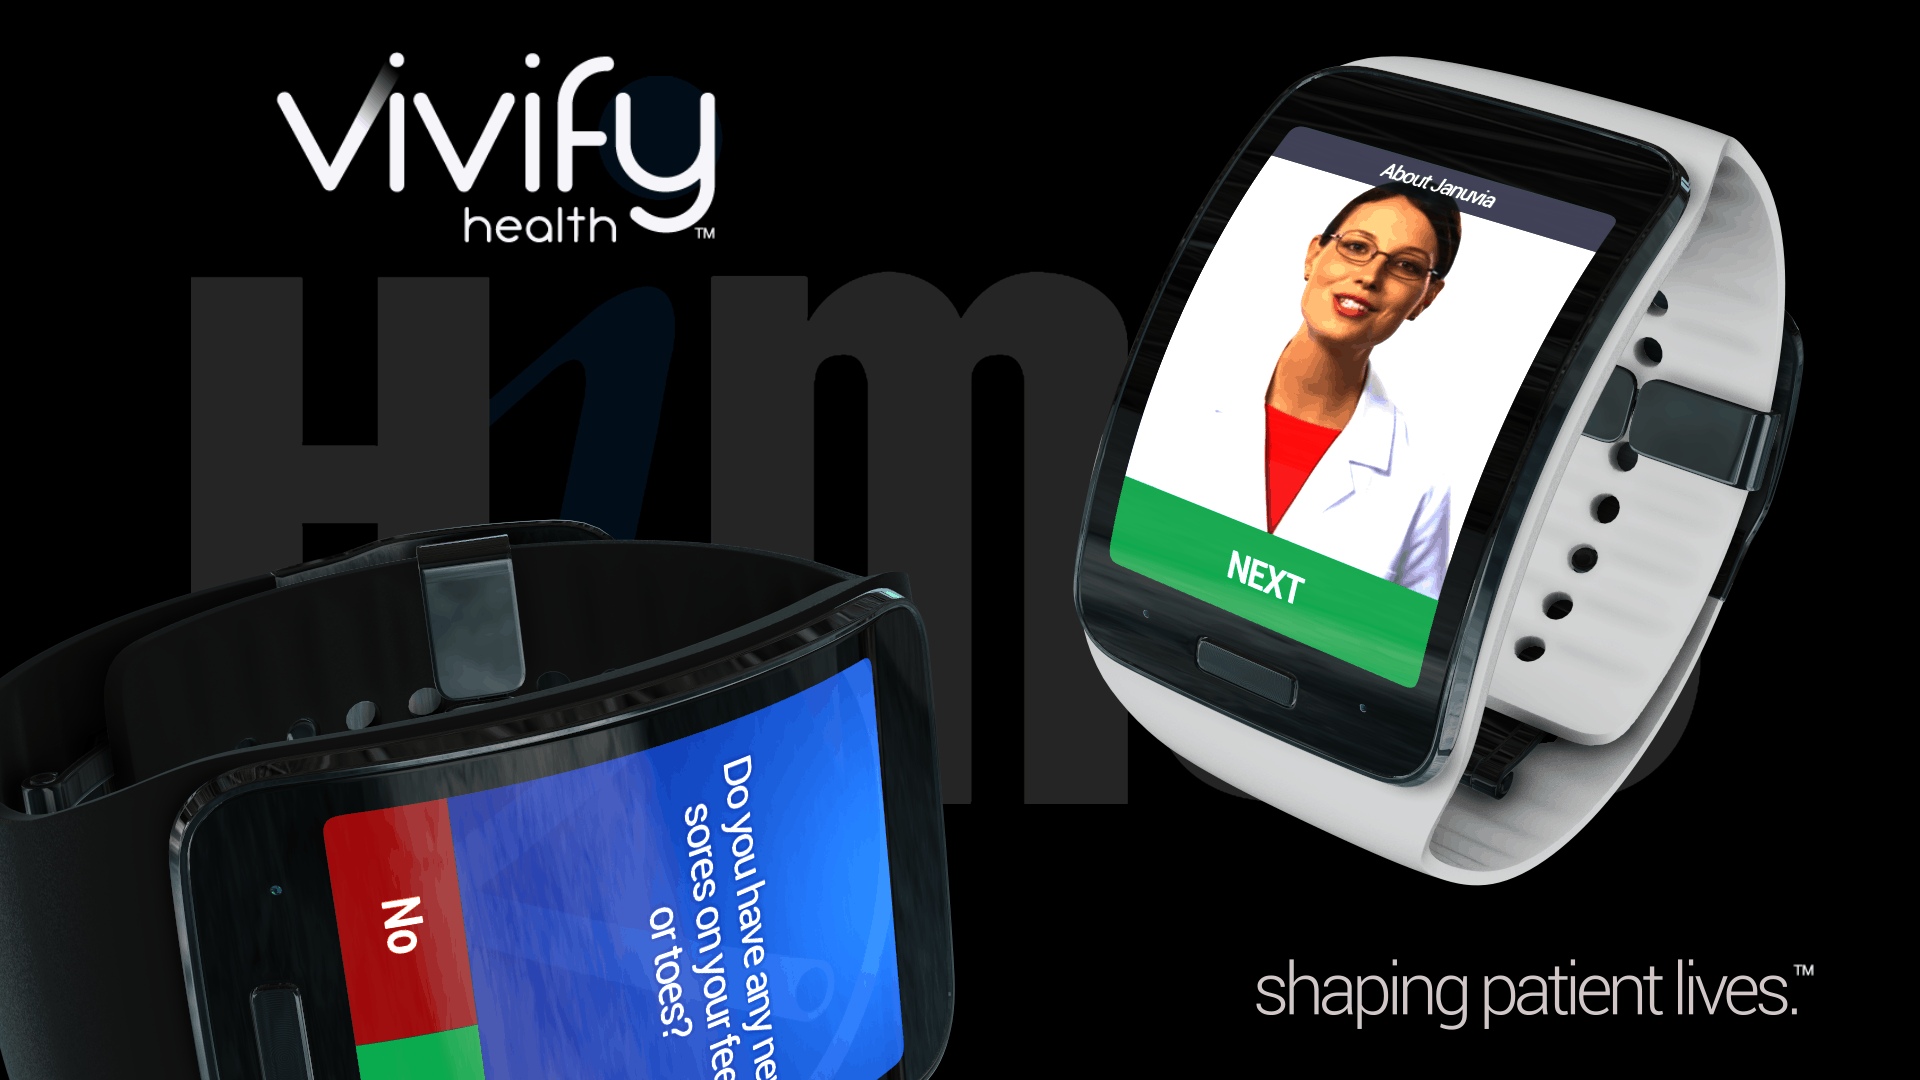 Shaping patient lives using ‪#‎wearables‬ at ‪#‎HIMSS2015‬. IMH #8265 Kiosk #21 or Samsung #503